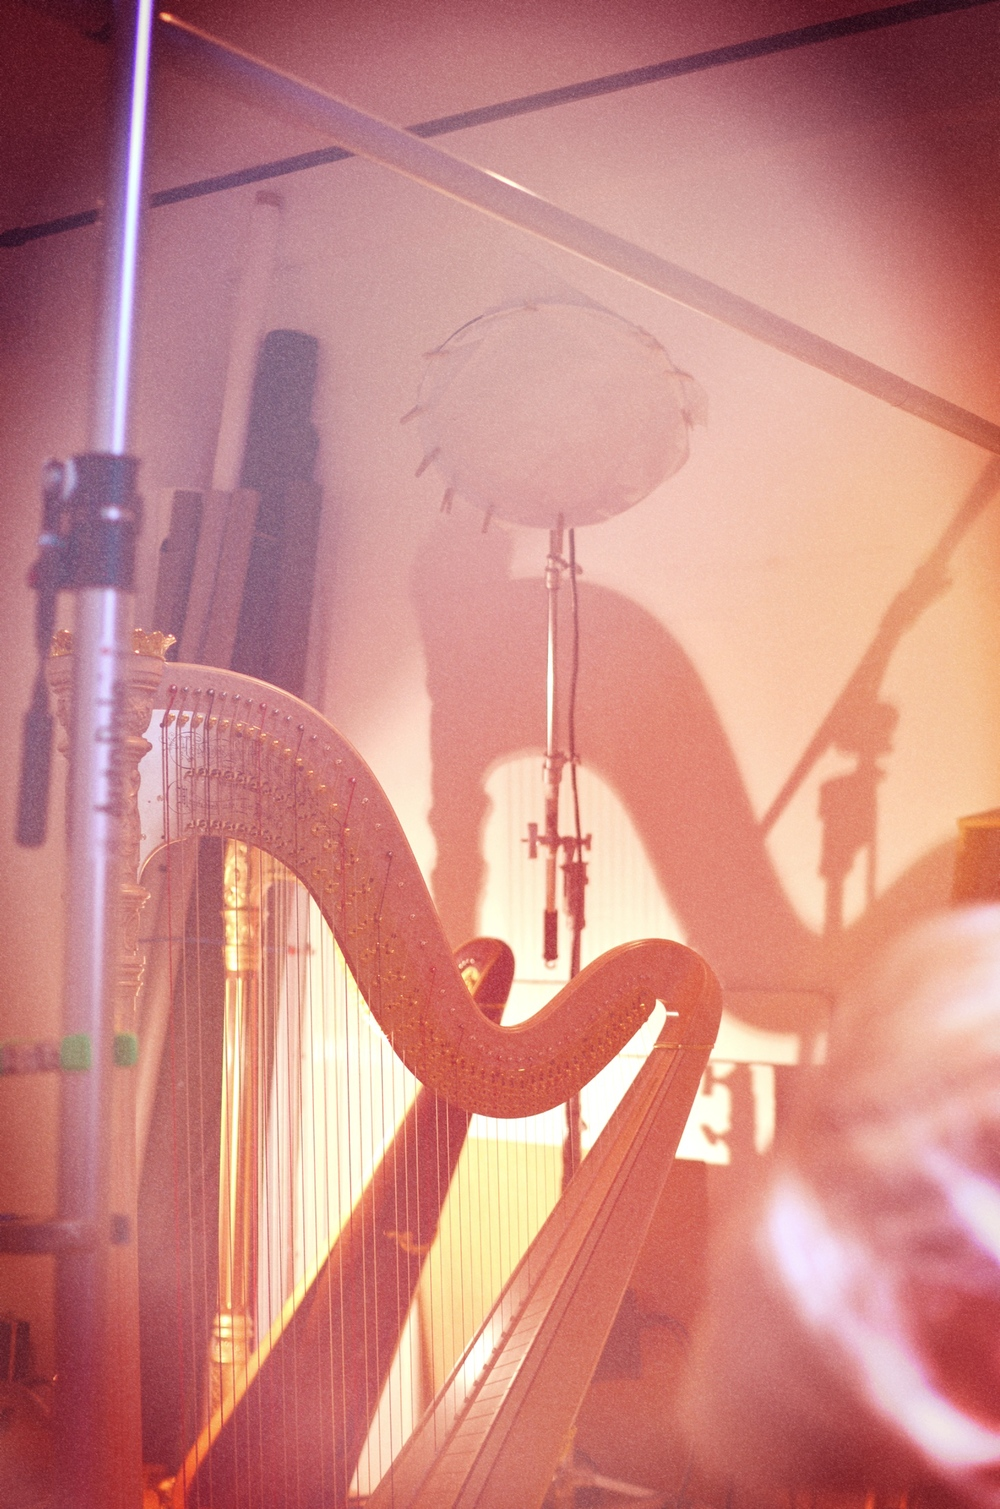 Photoshoot - Harps Vertical.jpg